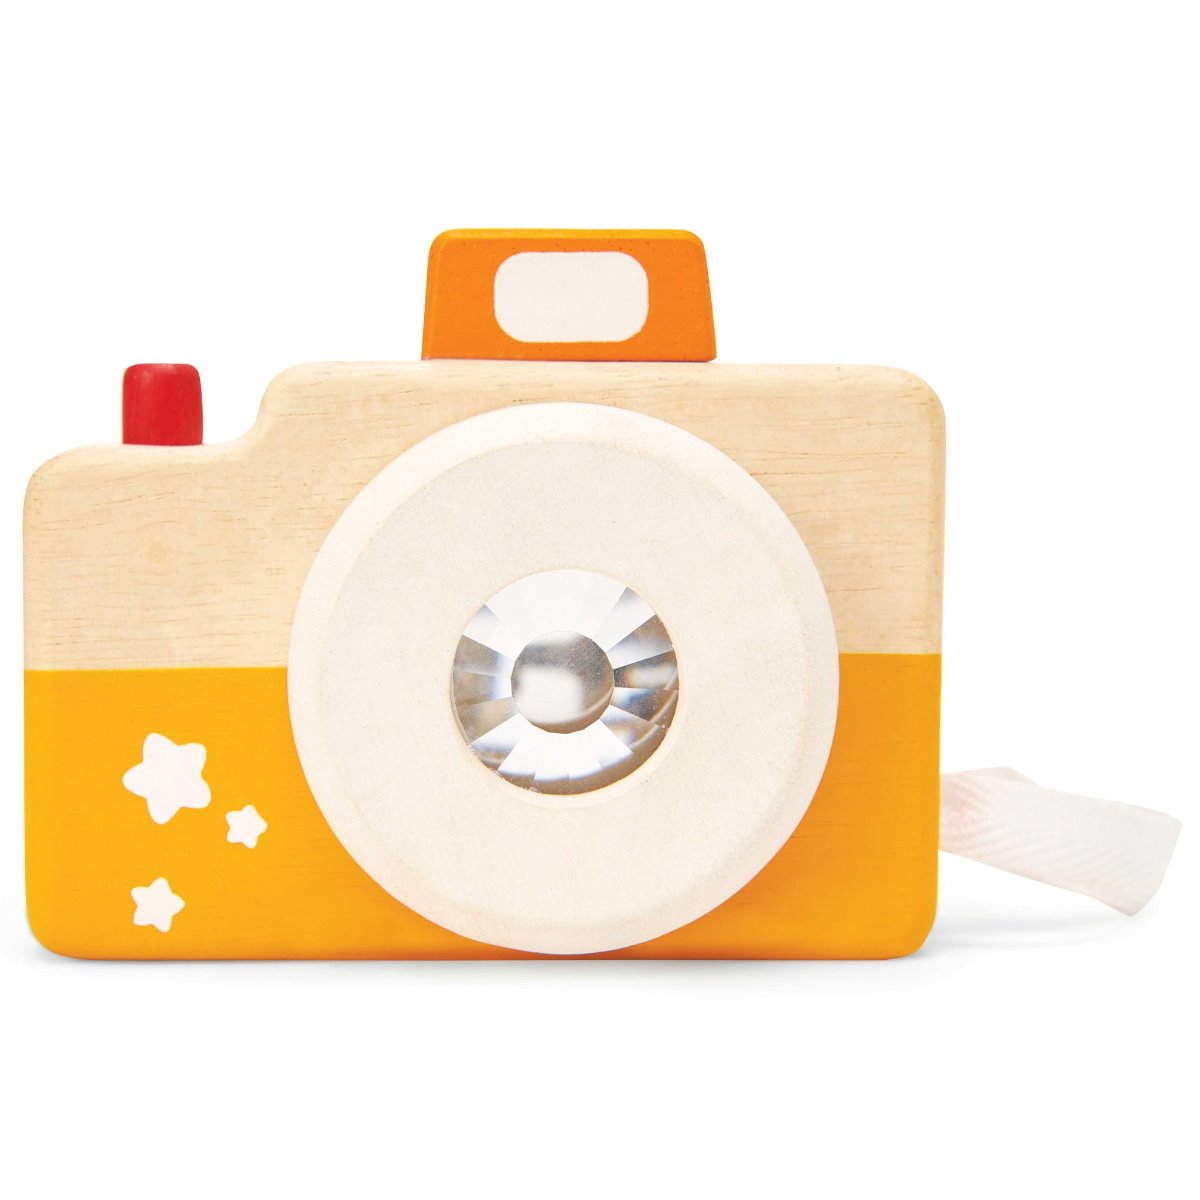 Le Toy Van Petilou Wooden Camera with Kaleidoscope